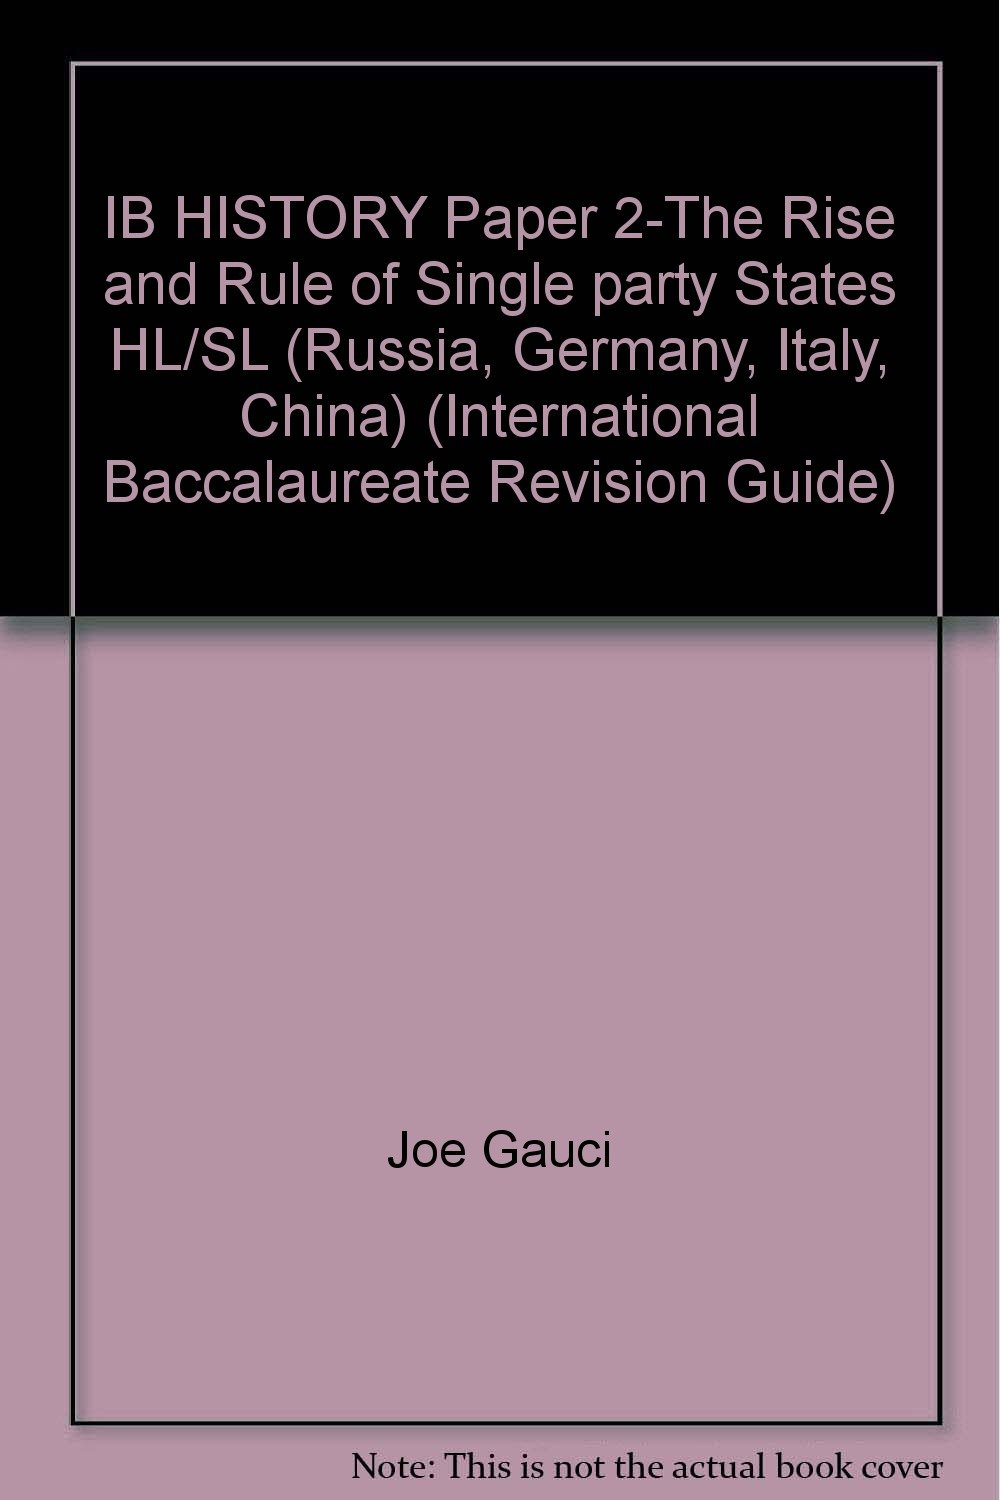 ib history authoritarian and single party states notes